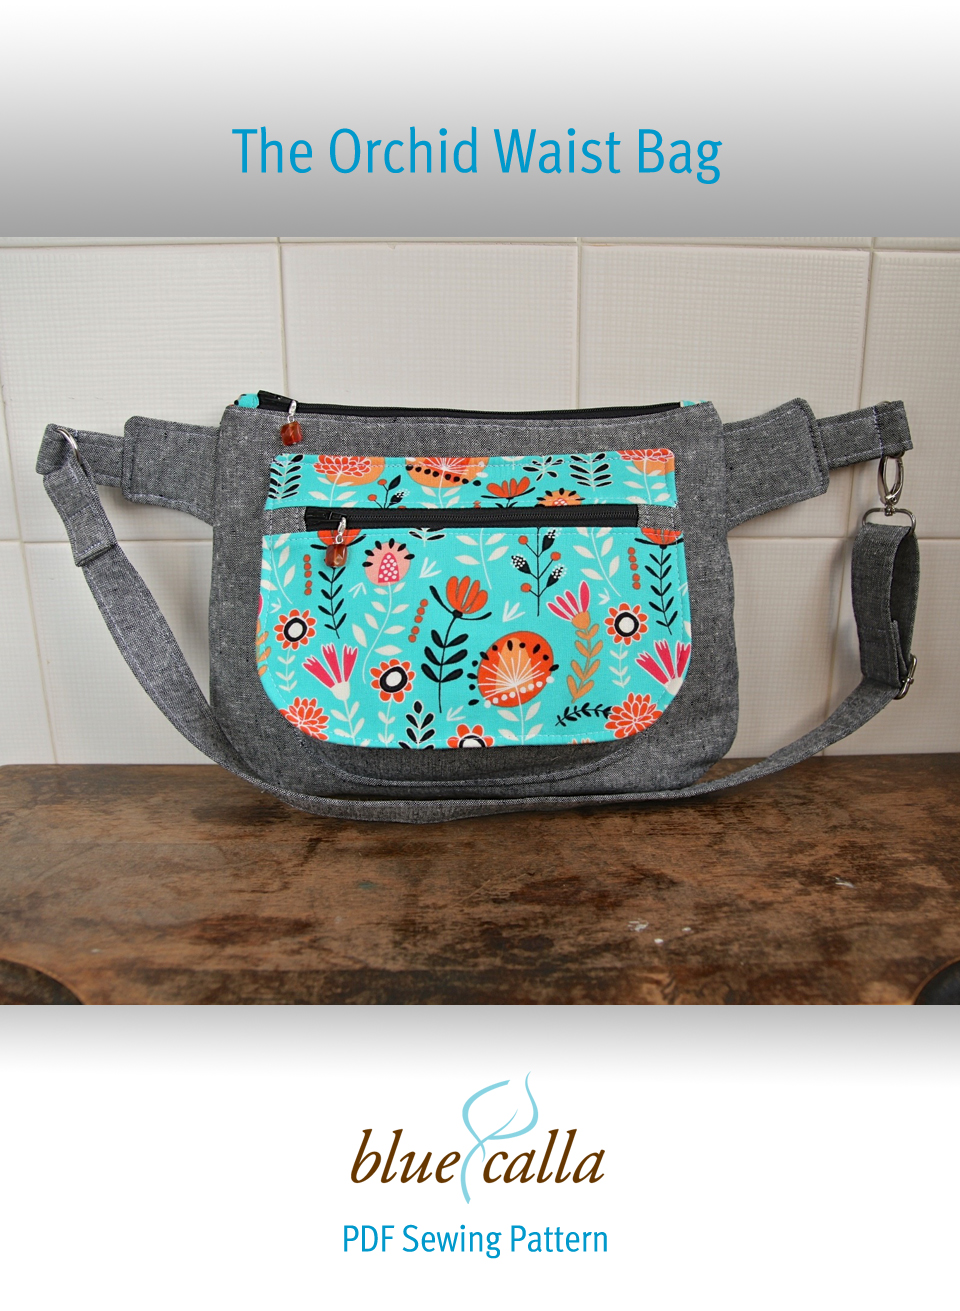 Blue calla adventures in sewing new pattern the orchid waist bag jeuxipadfo Choice Image